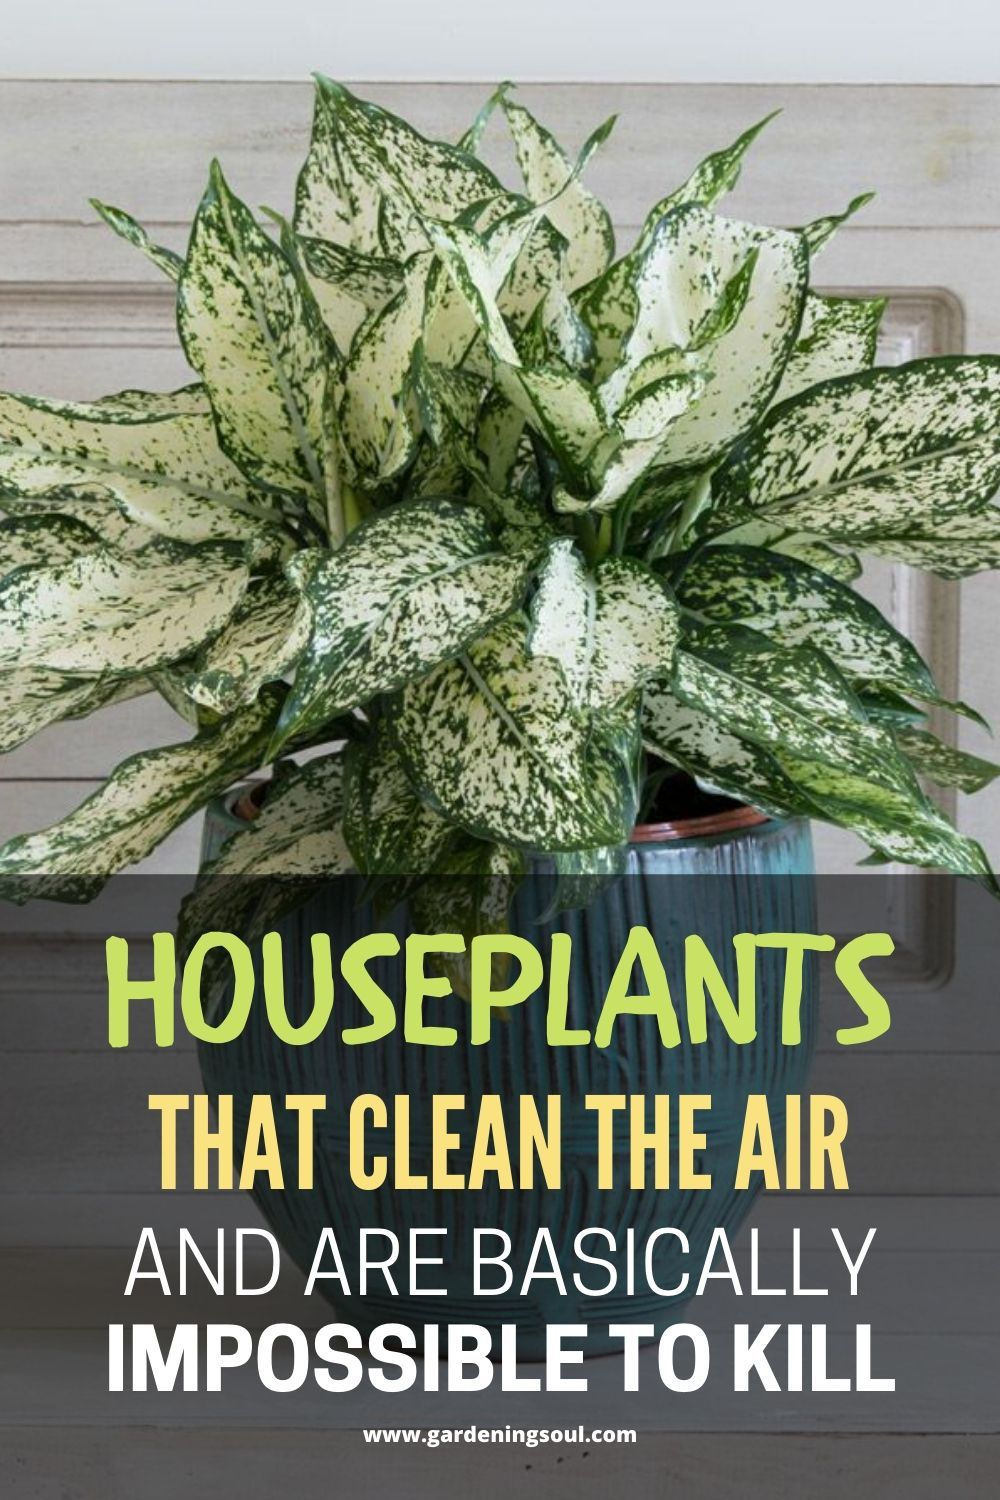 Houseplants That Clean The Air And Are Basically Impossible To Kill